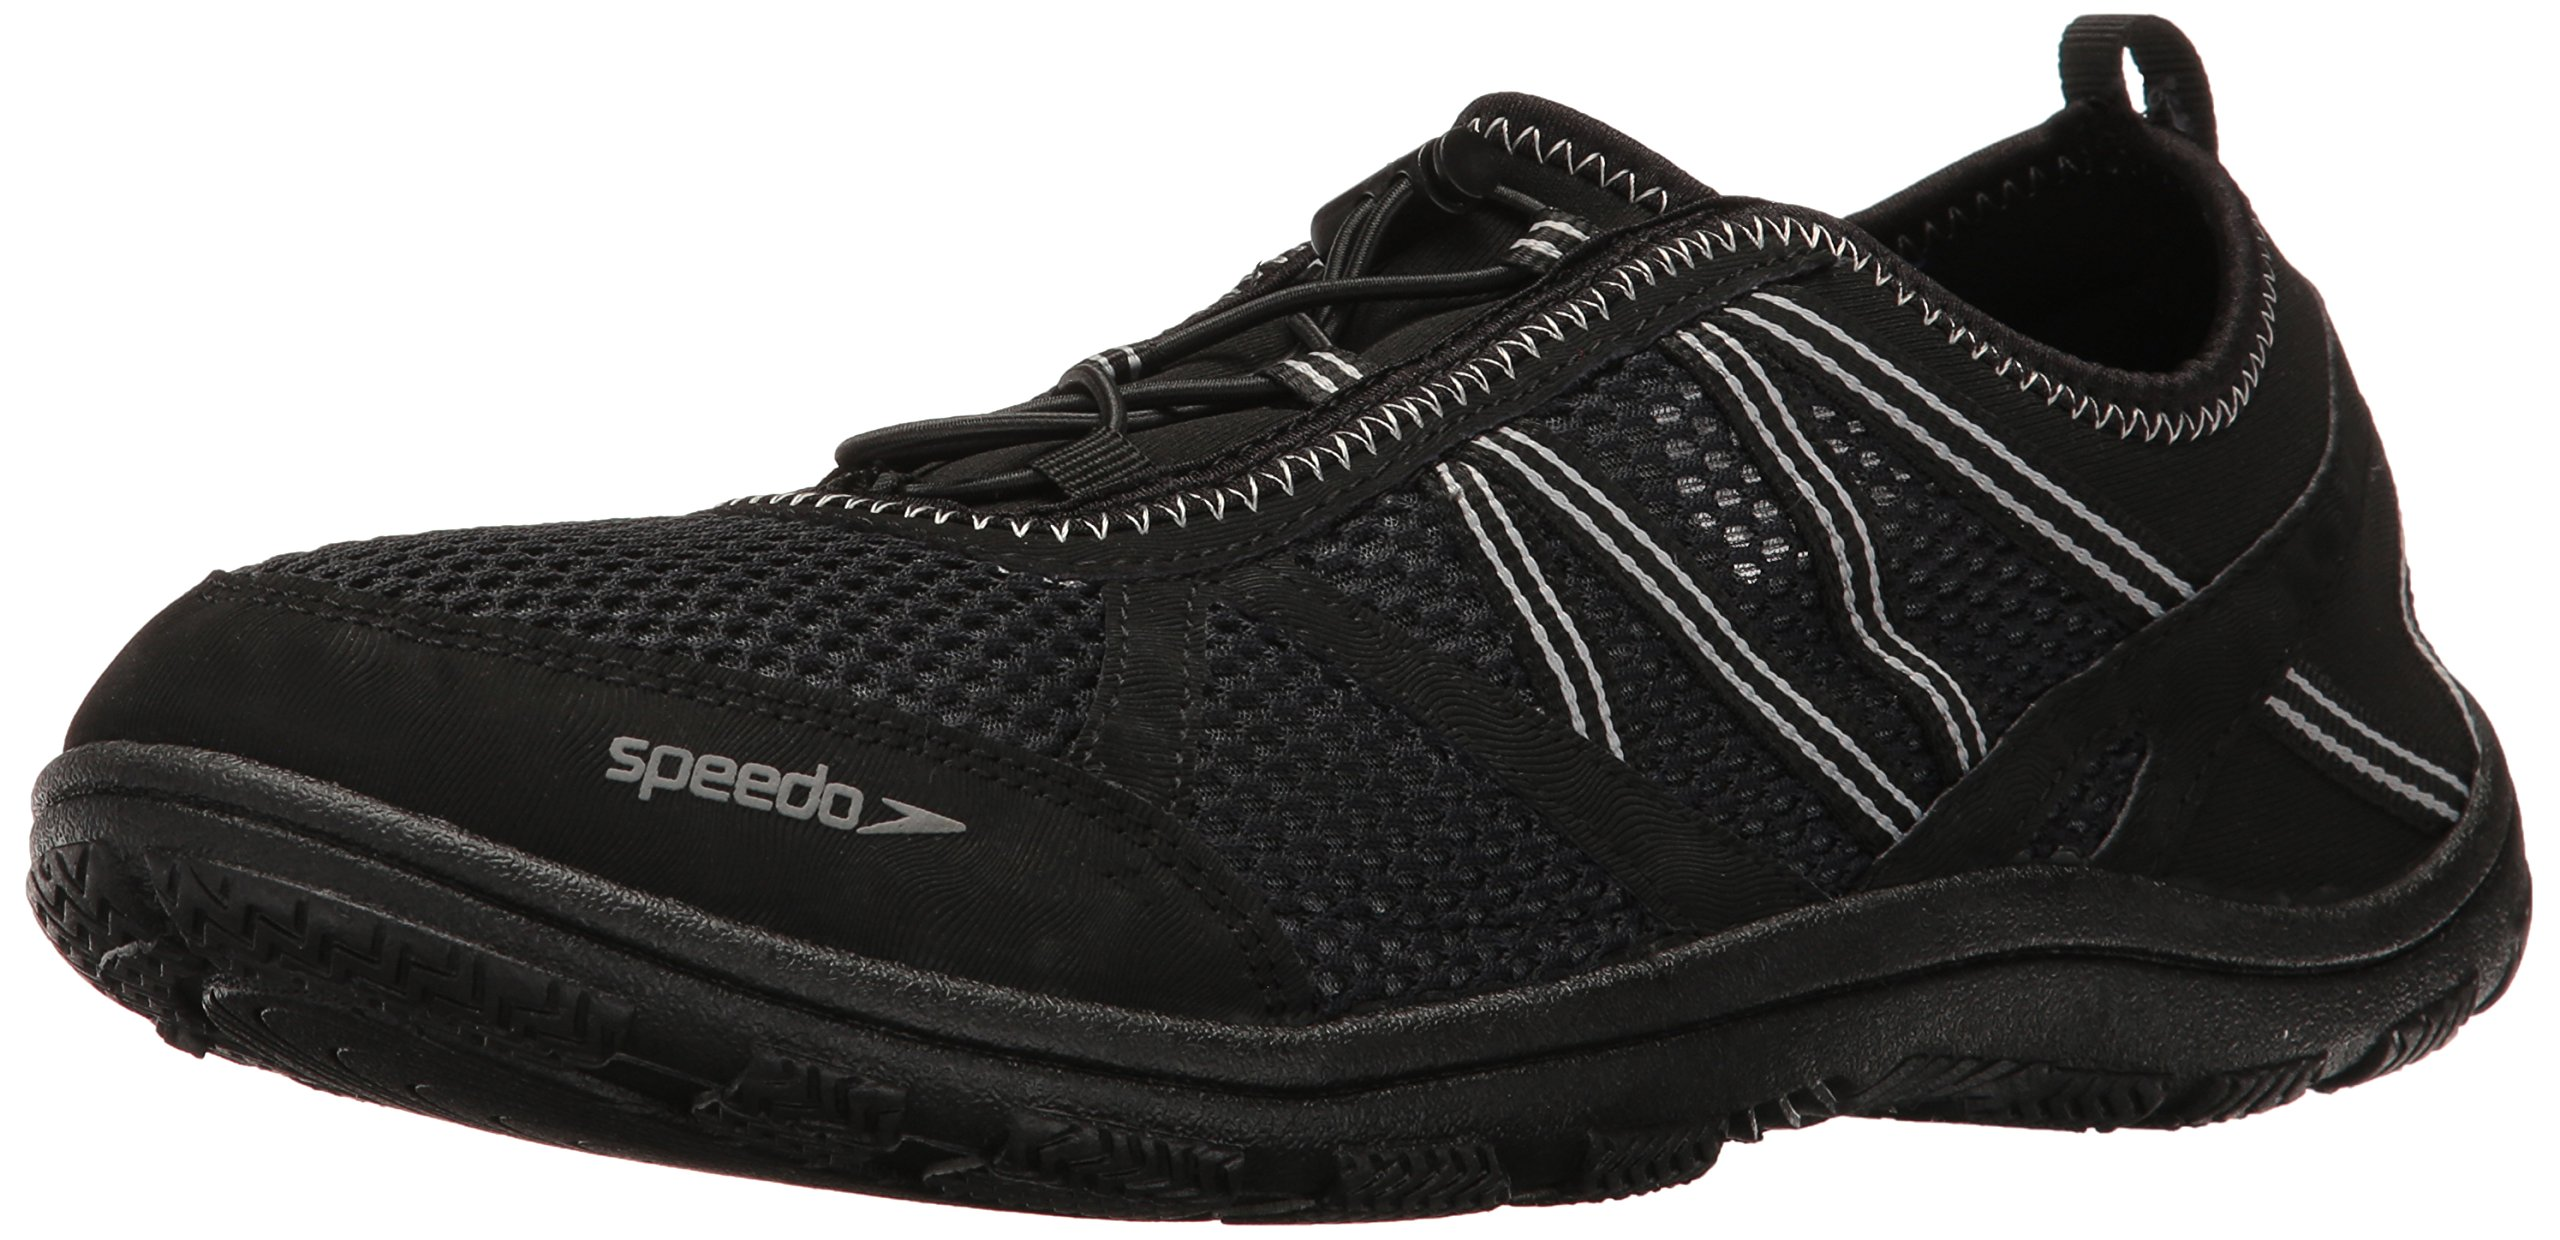 5e0413f384328 Speedo Men's Seaside Lace 5.0 Athletic Water Shoe, Black/Black, 11 C/D US